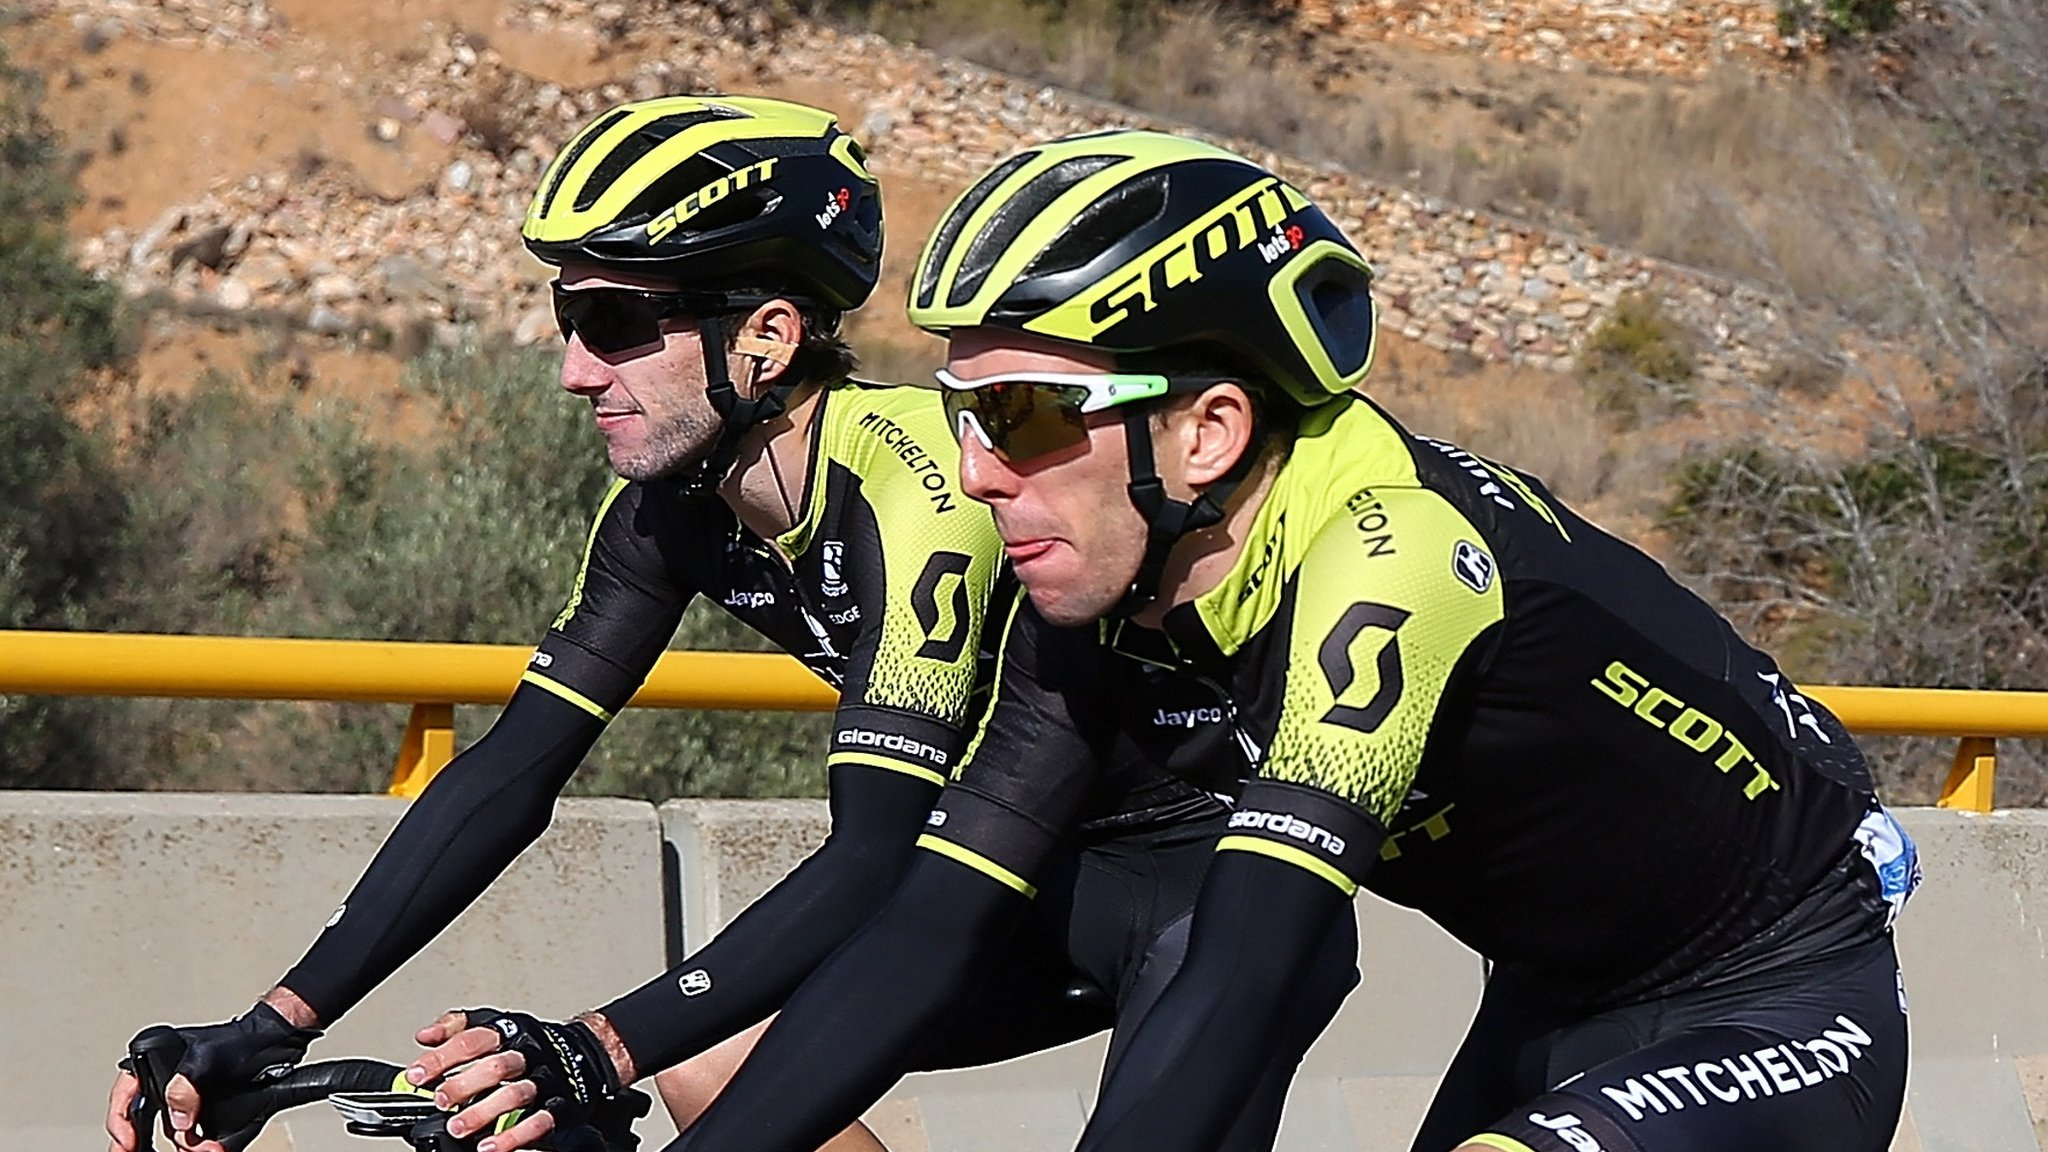 Both Yates twins will now race in Vuelta a Espana